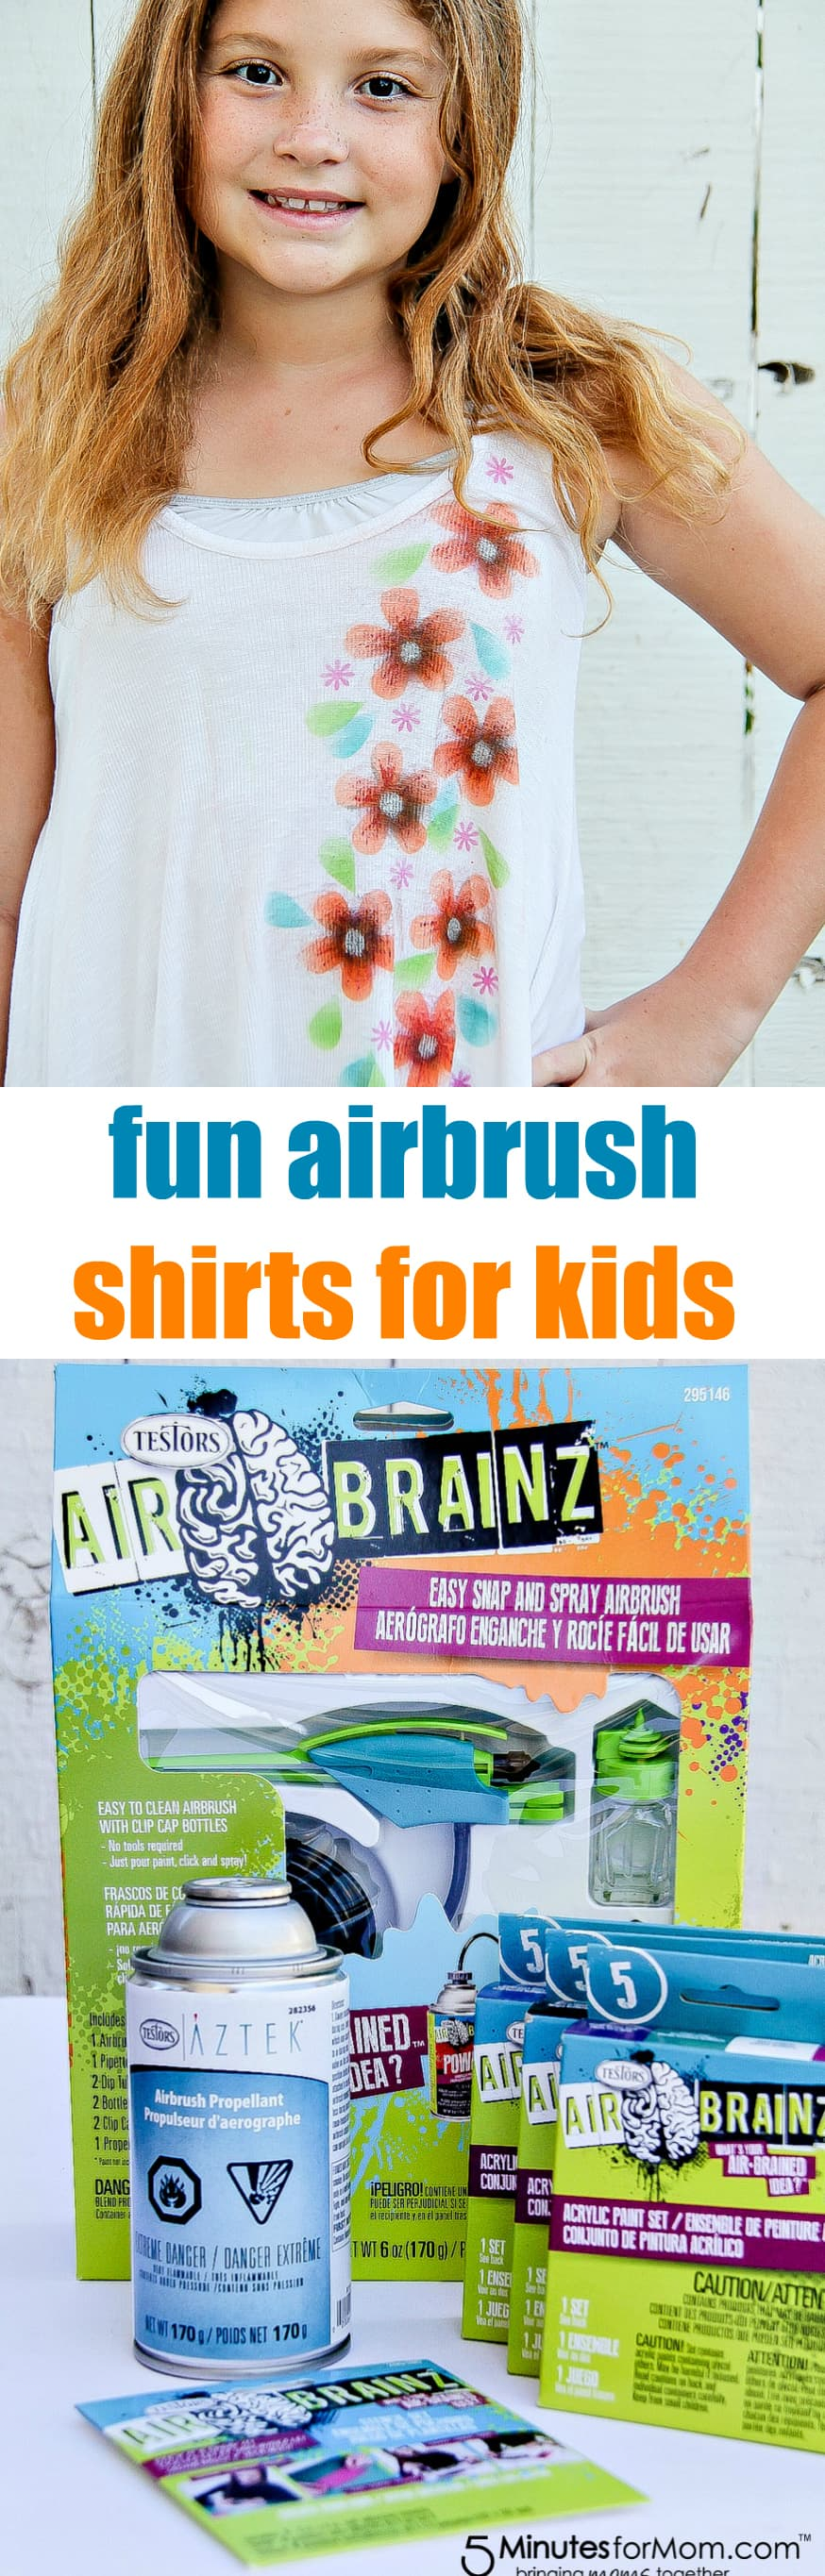 Testors AirBrainz Airbrush kits are perfect for kids who want to make customized shirts and accessories for back to school.